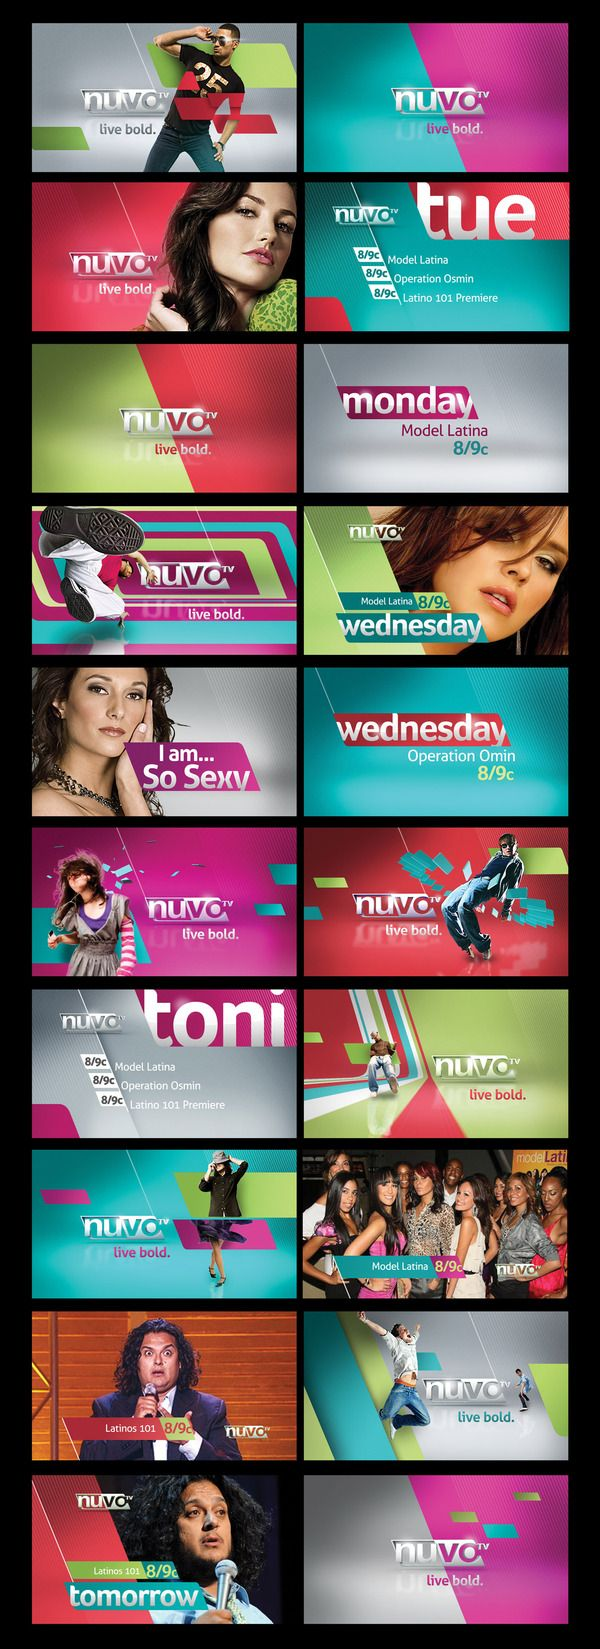 nuvo tv by marcos vaz, via Behance